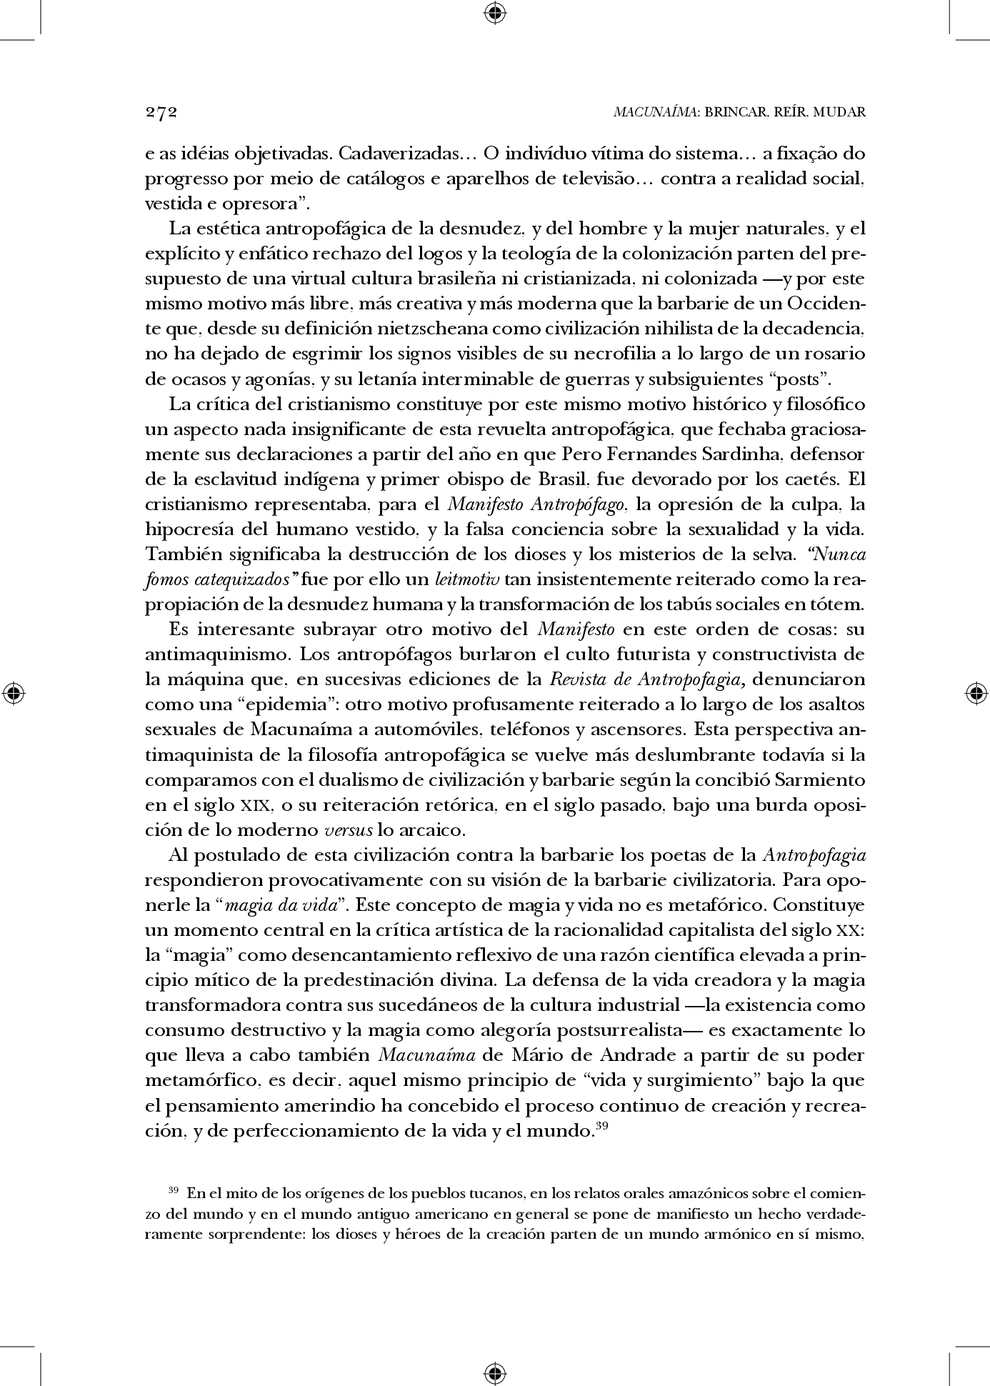 Page 268